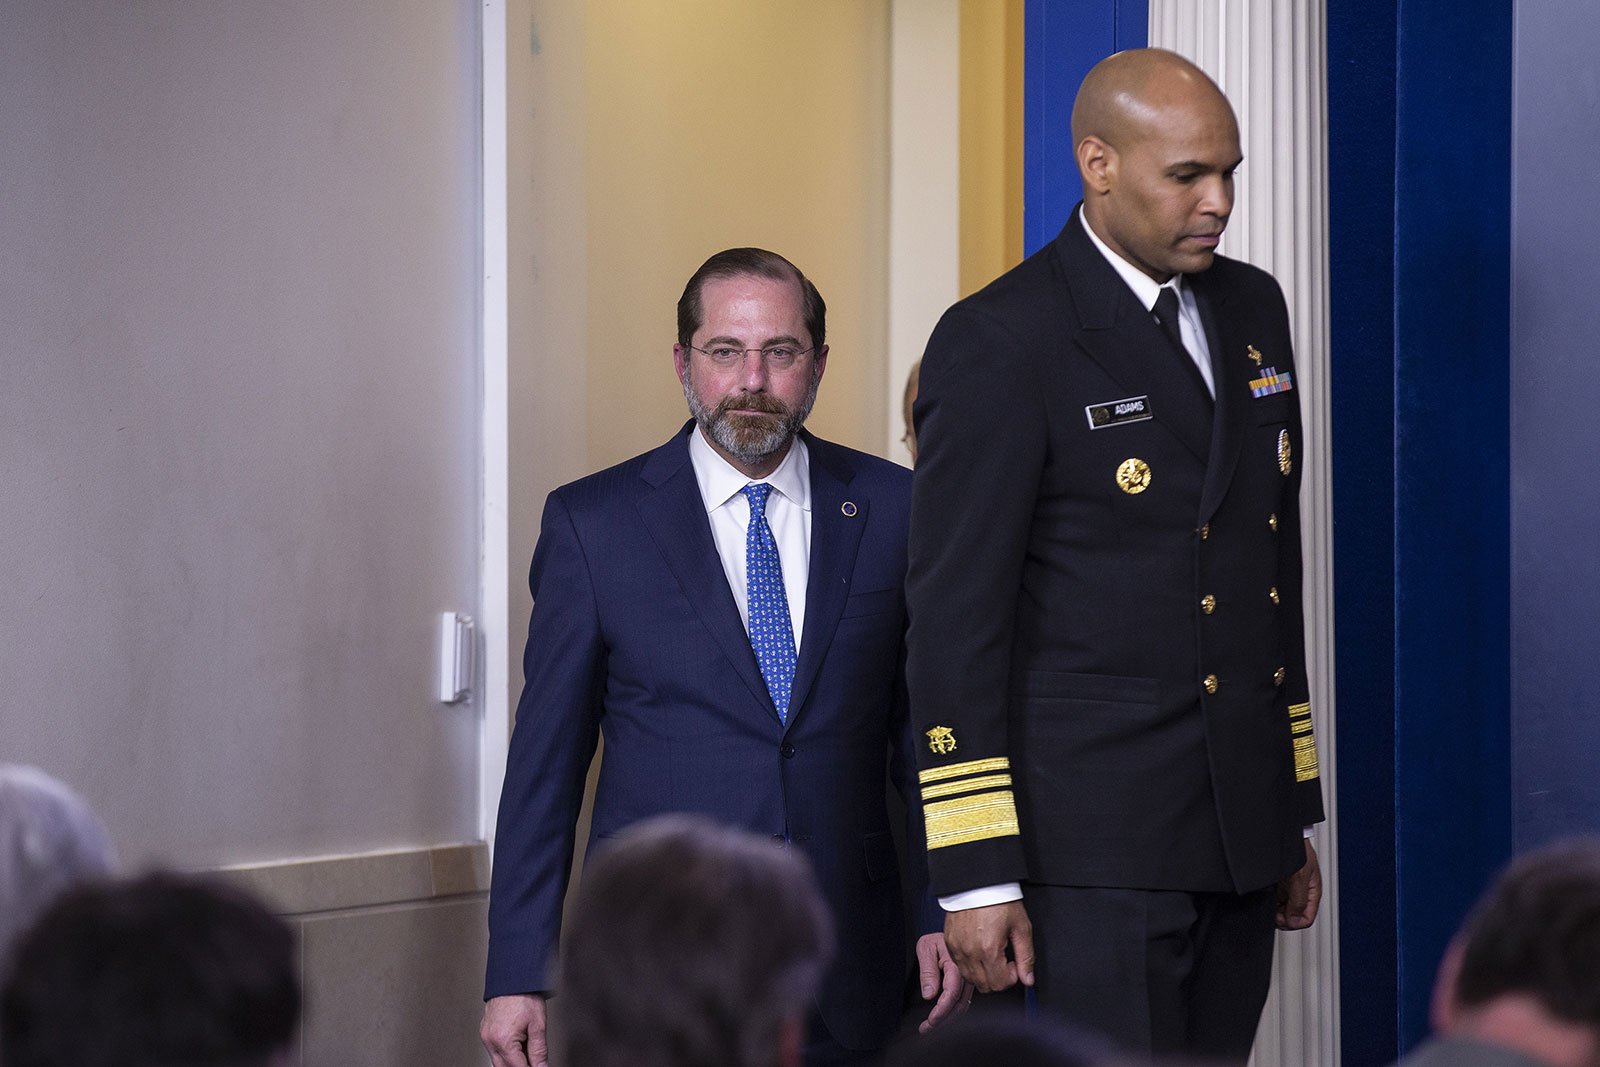 From left, Health and Human Services Secretary Alex Azar and US Surgeon General Jerome Adams arrive at a coronavirus task force briefing on March 9.